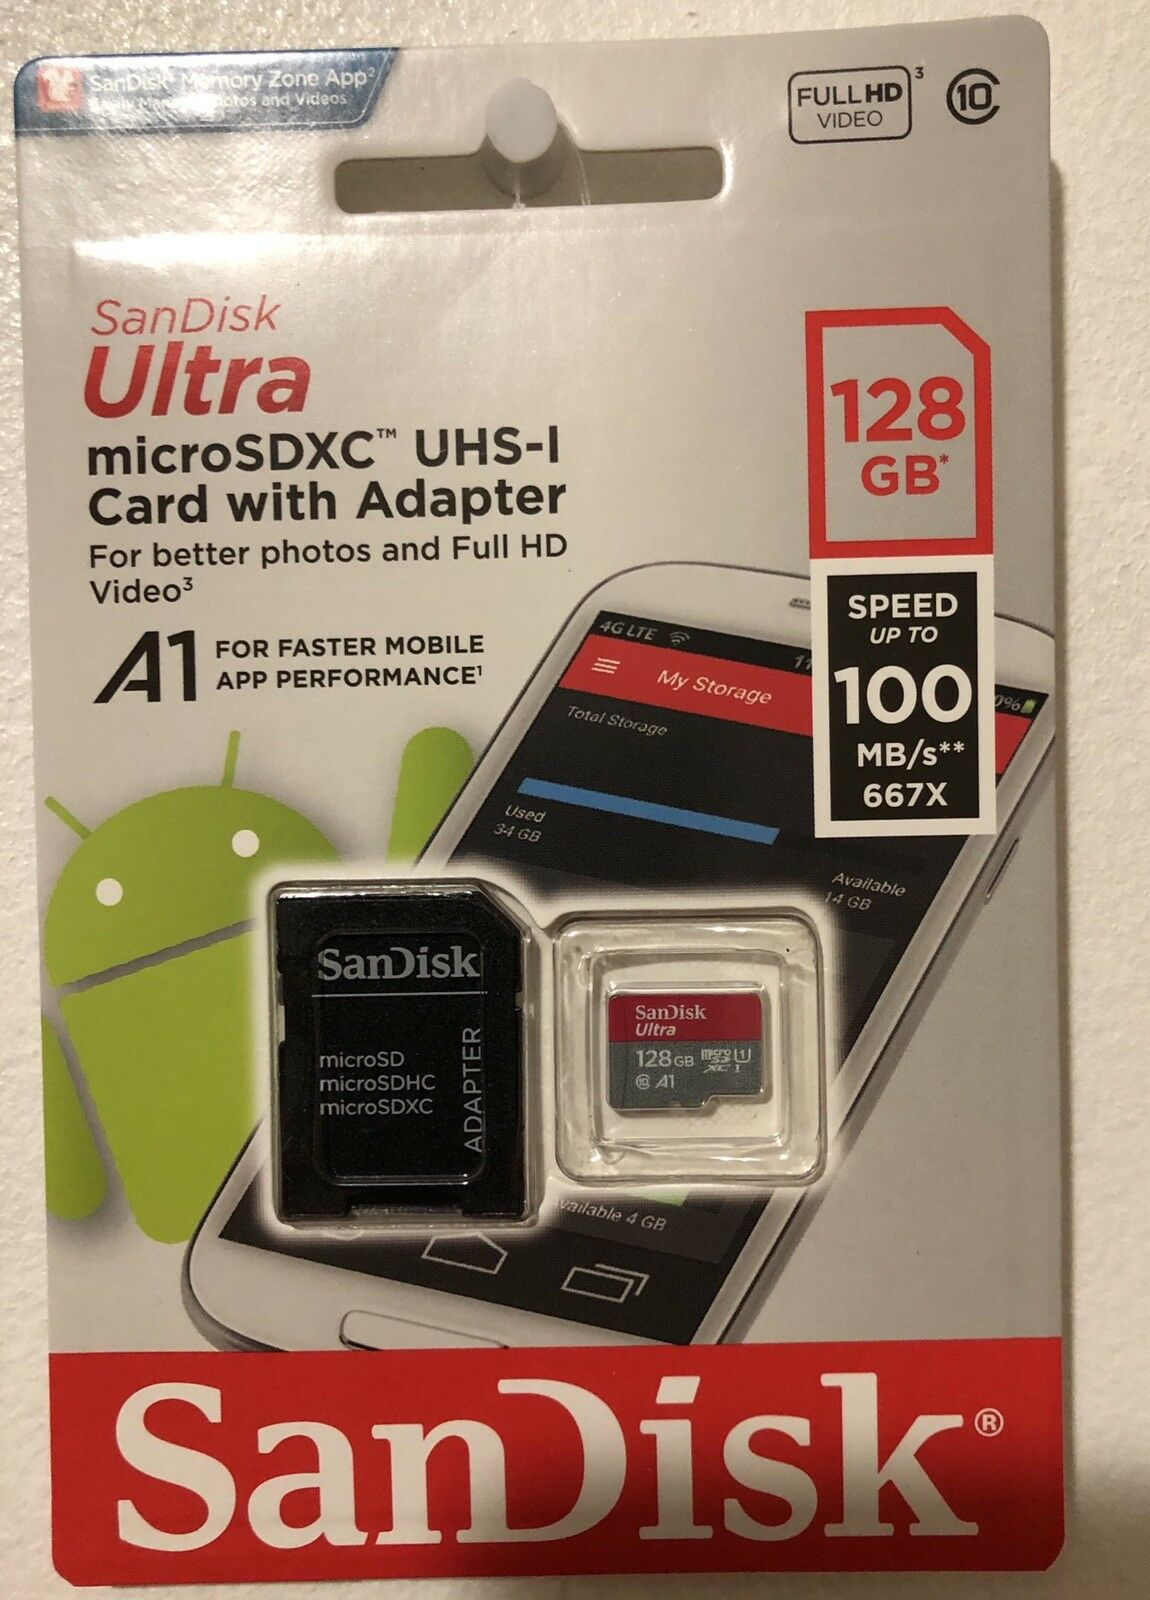 SanDisk Ultra 128GB MicroSDXC Verified for Samsung SM-T670NZWAXAR by SanFlash 100MBs A1 U1 C10 Works with SanDisk